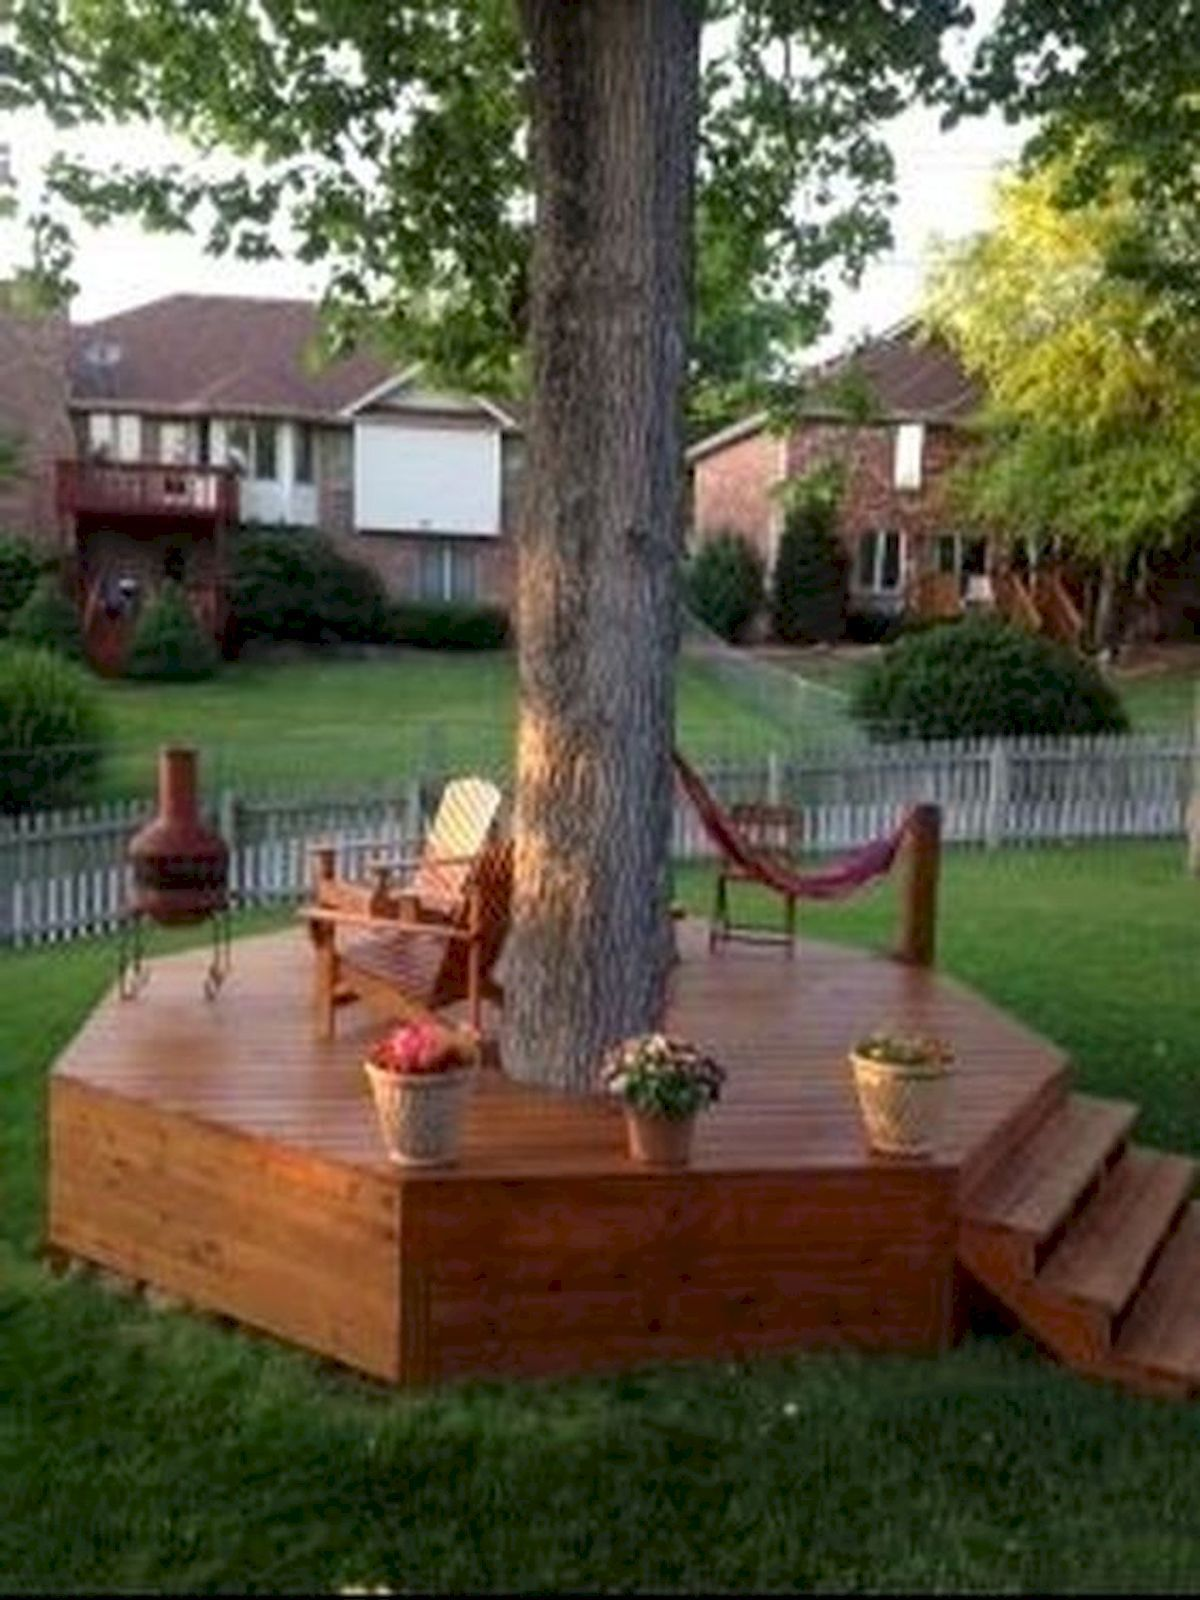 60 beautiful backyard garden design ideas and remodel 26 on beautiful backyard garden design ideas and remodel create your extraordinary garden id=32235